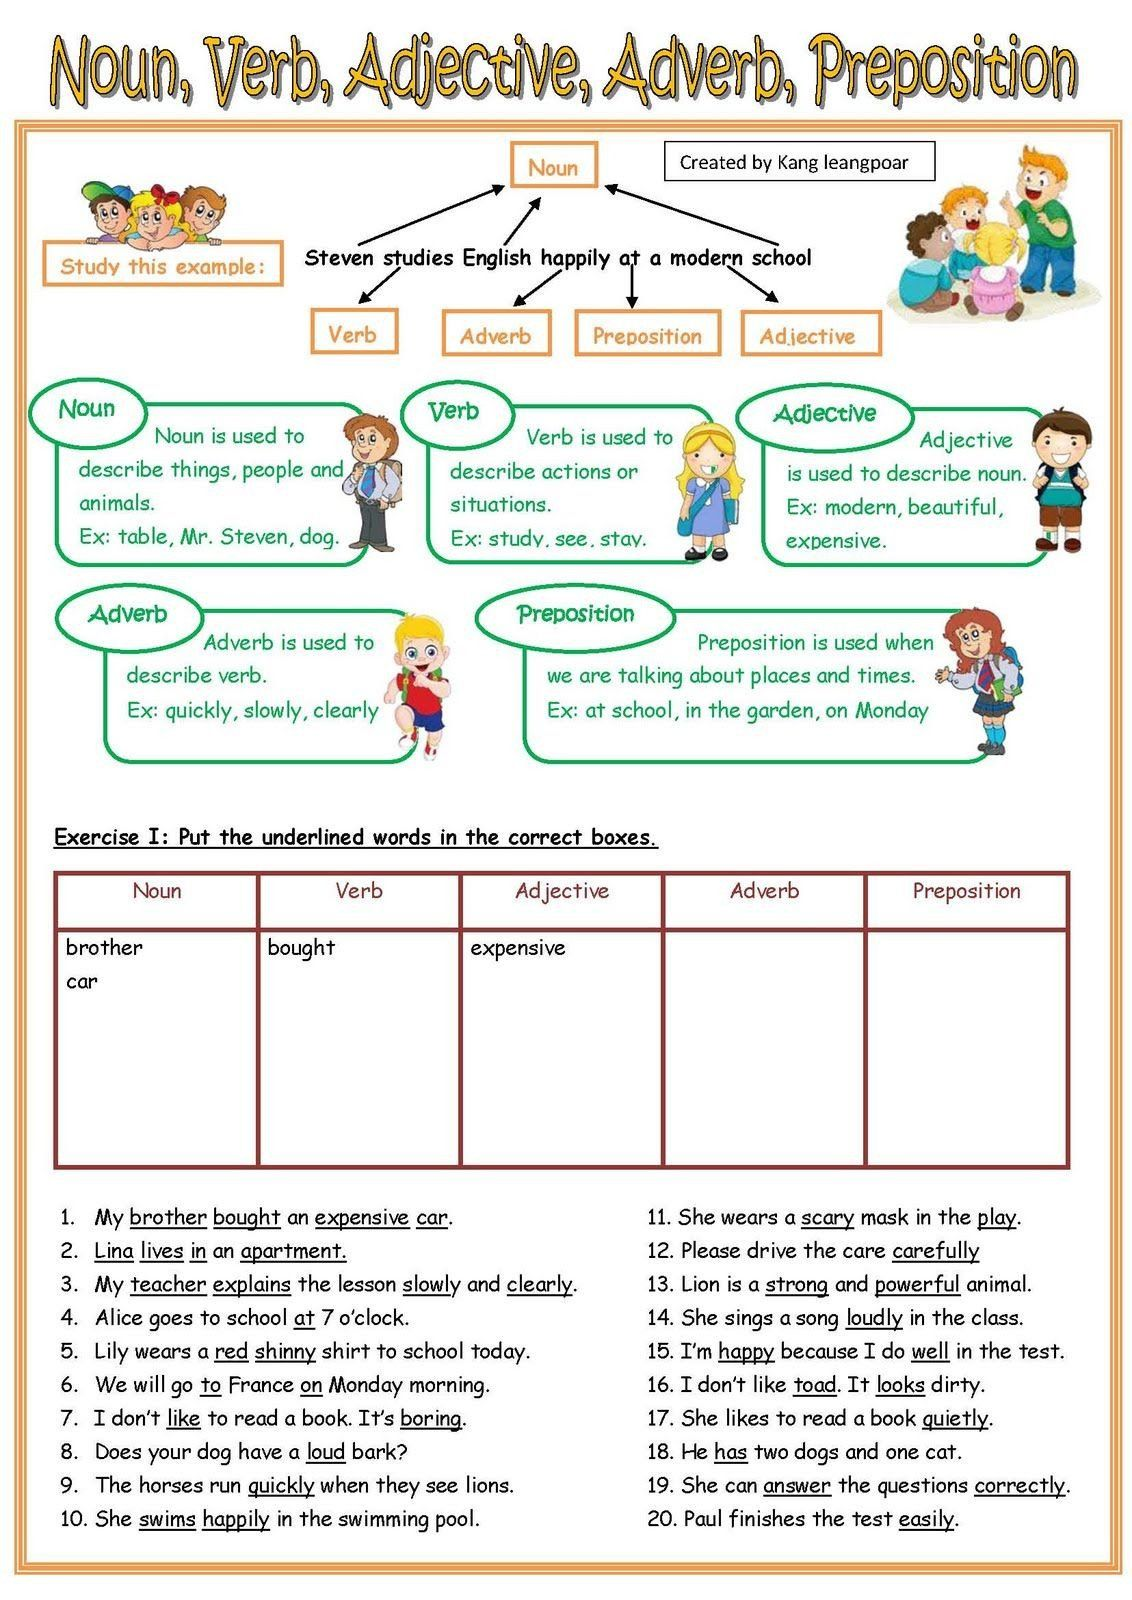 Nouns and Verbs Worksheet Free English Grammar Worksheets for 4th Grade 3  with – Prin…   Nouns verbs adjectives [ 1600 x 1132 Pixel ]